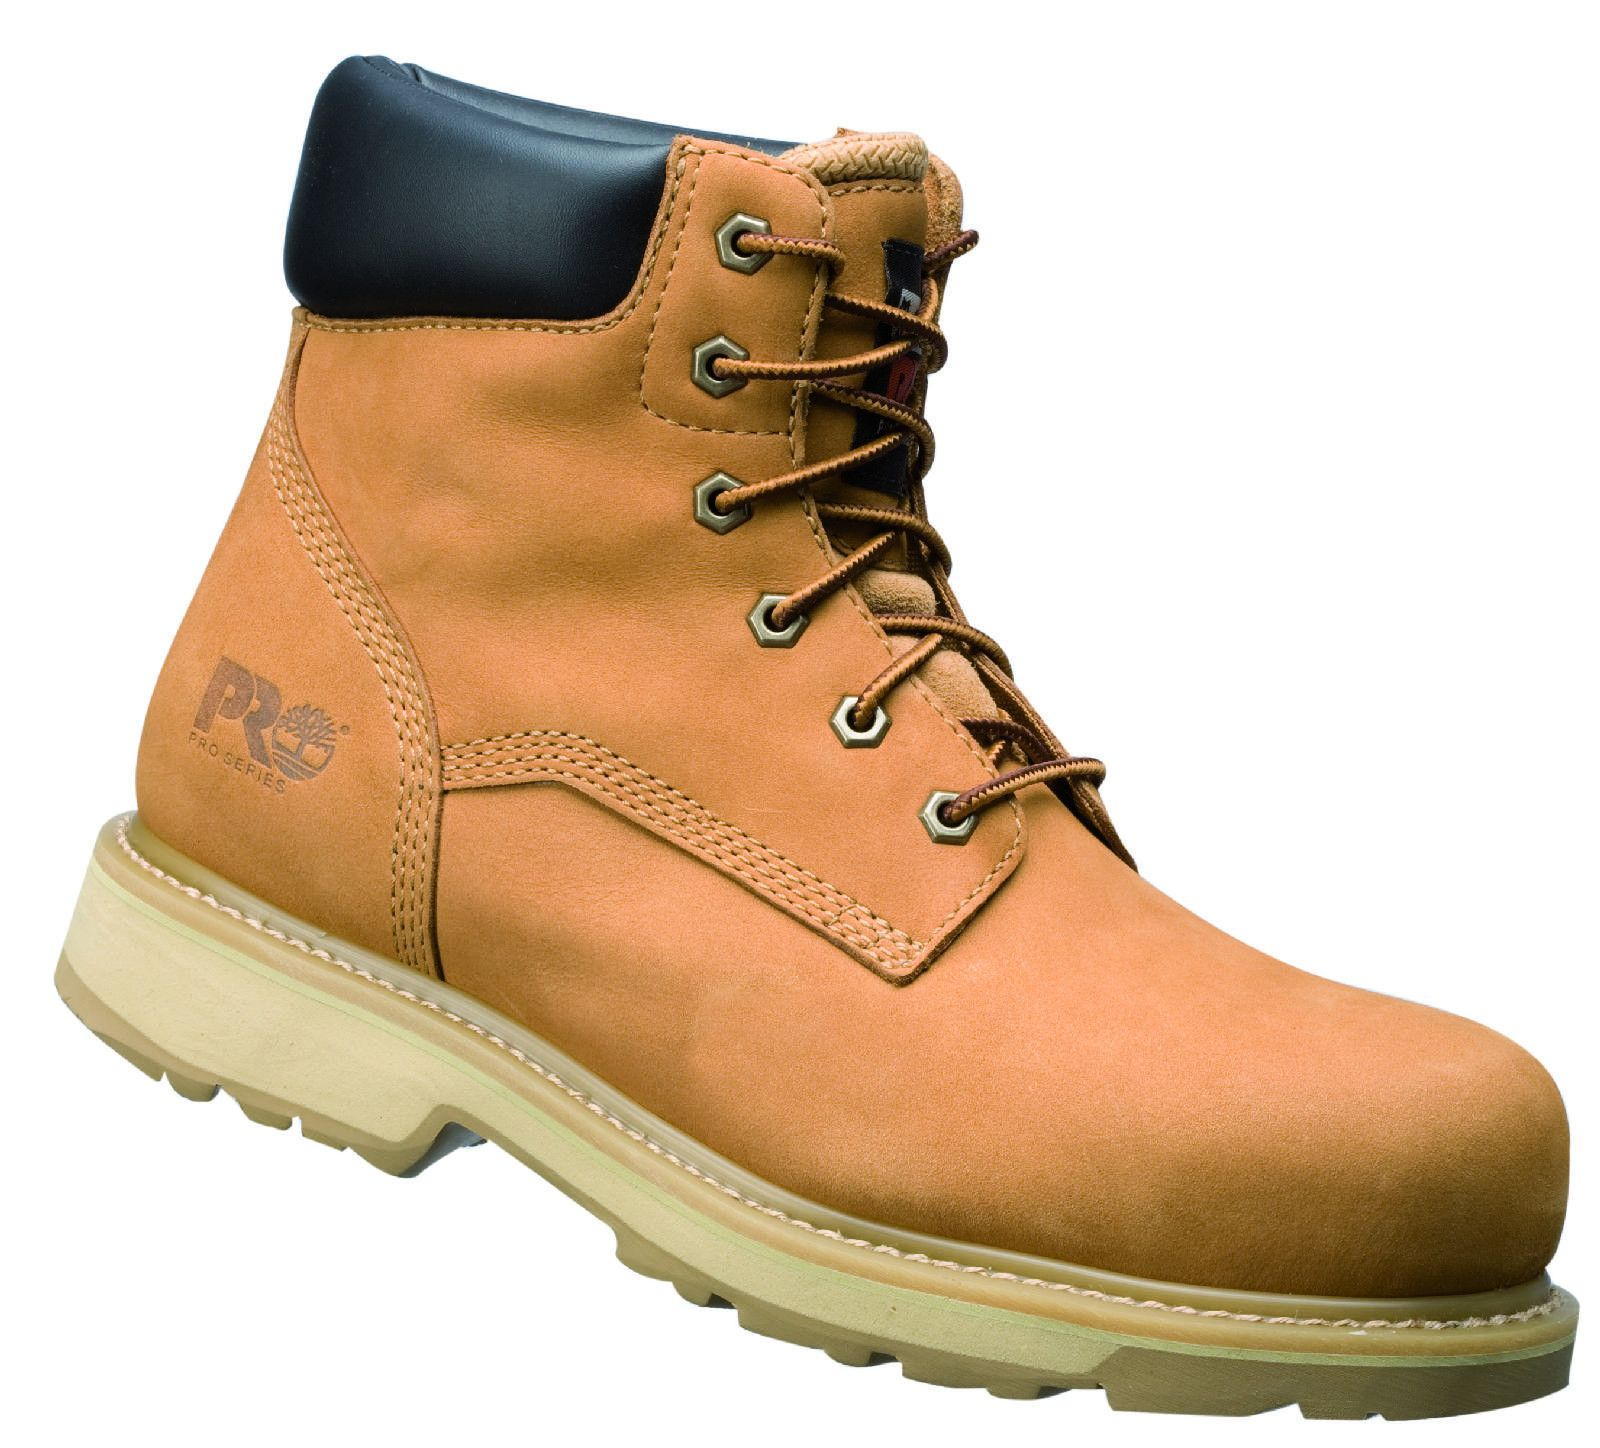 Timberland Pro Work Boots Traditional Wheat - New Design